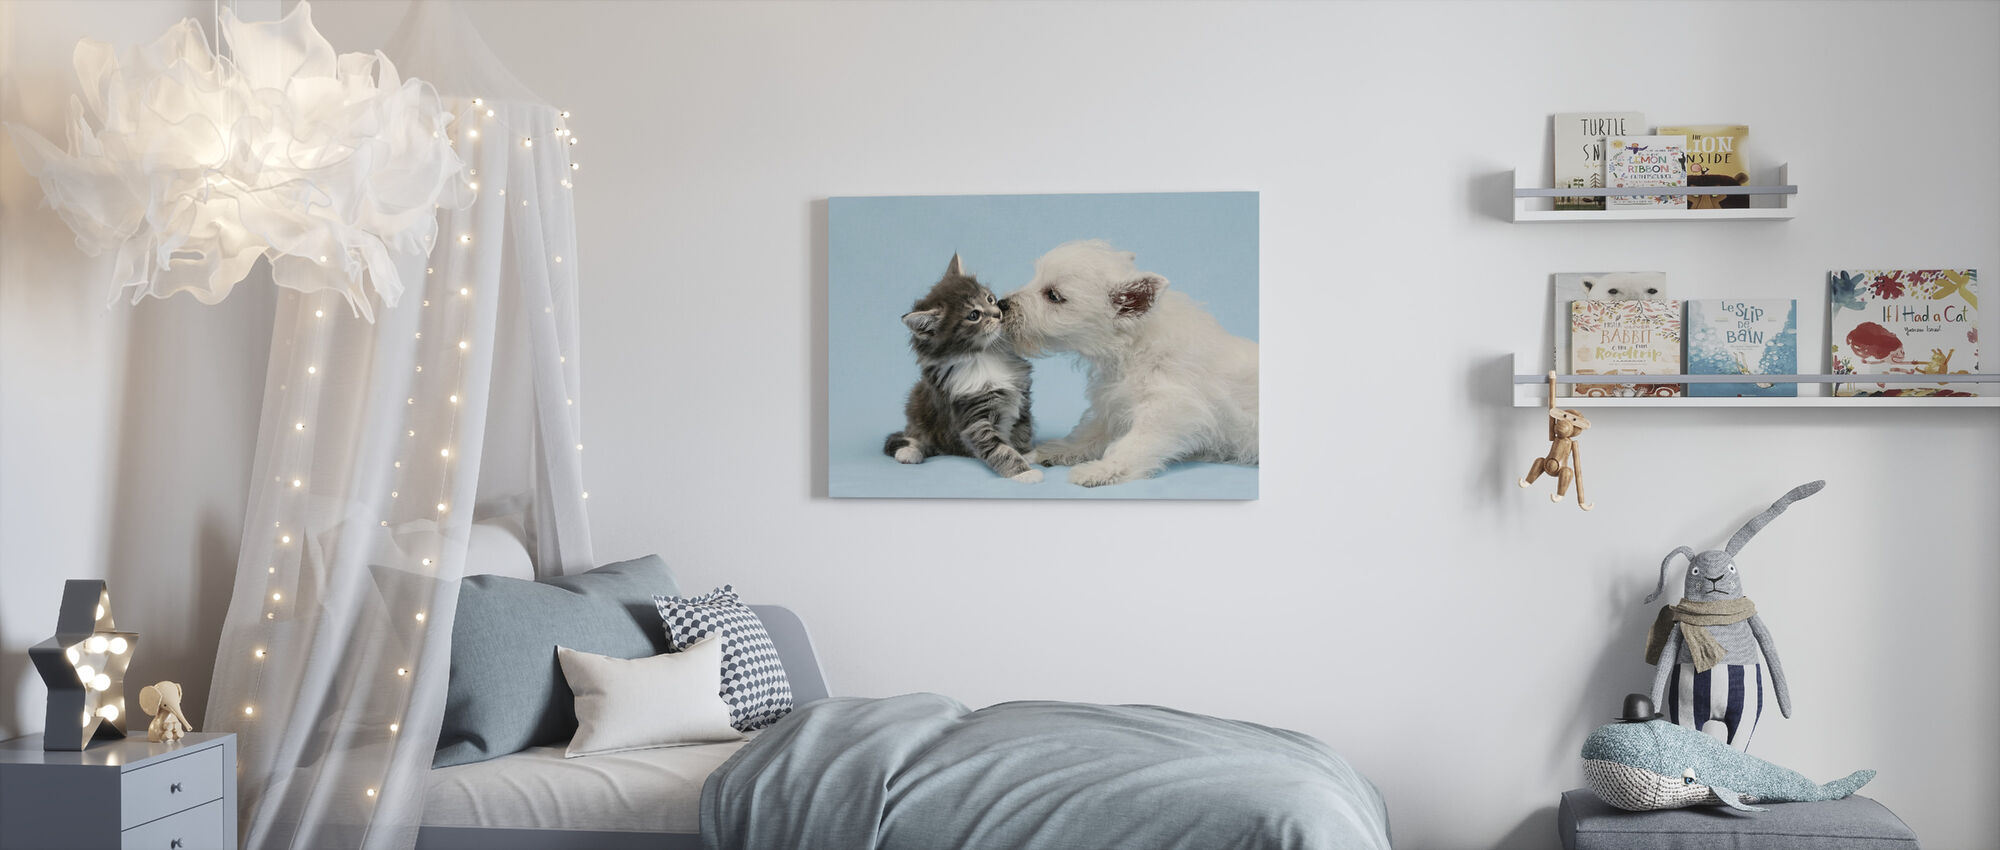 Dog Kissing Cat - Canvas print - Kids Room